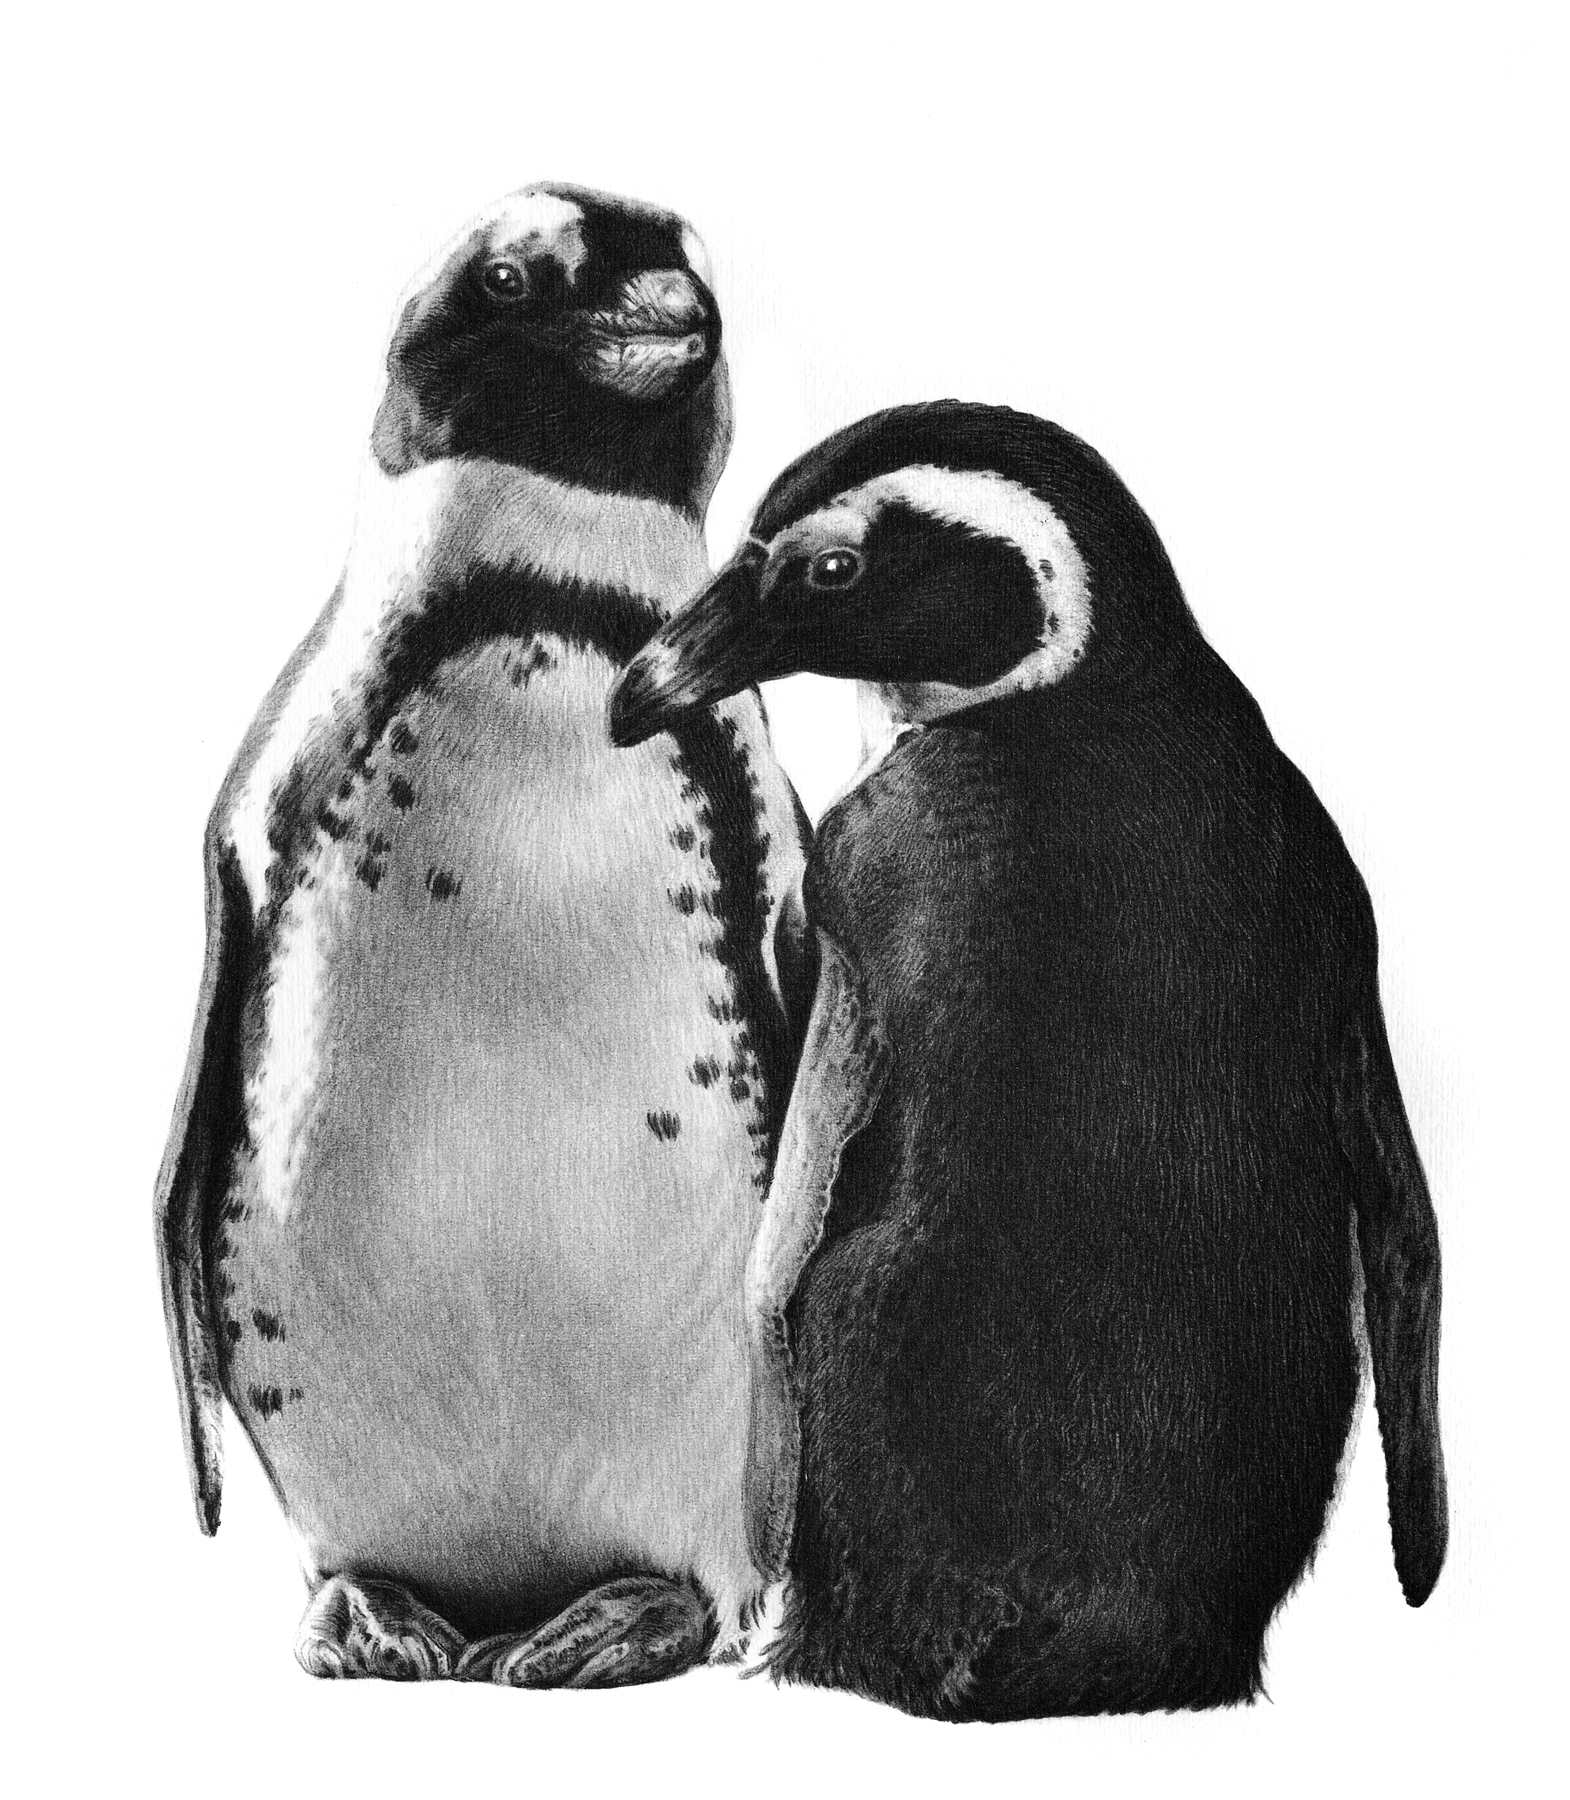 Just the two of us 2002 (penguins)